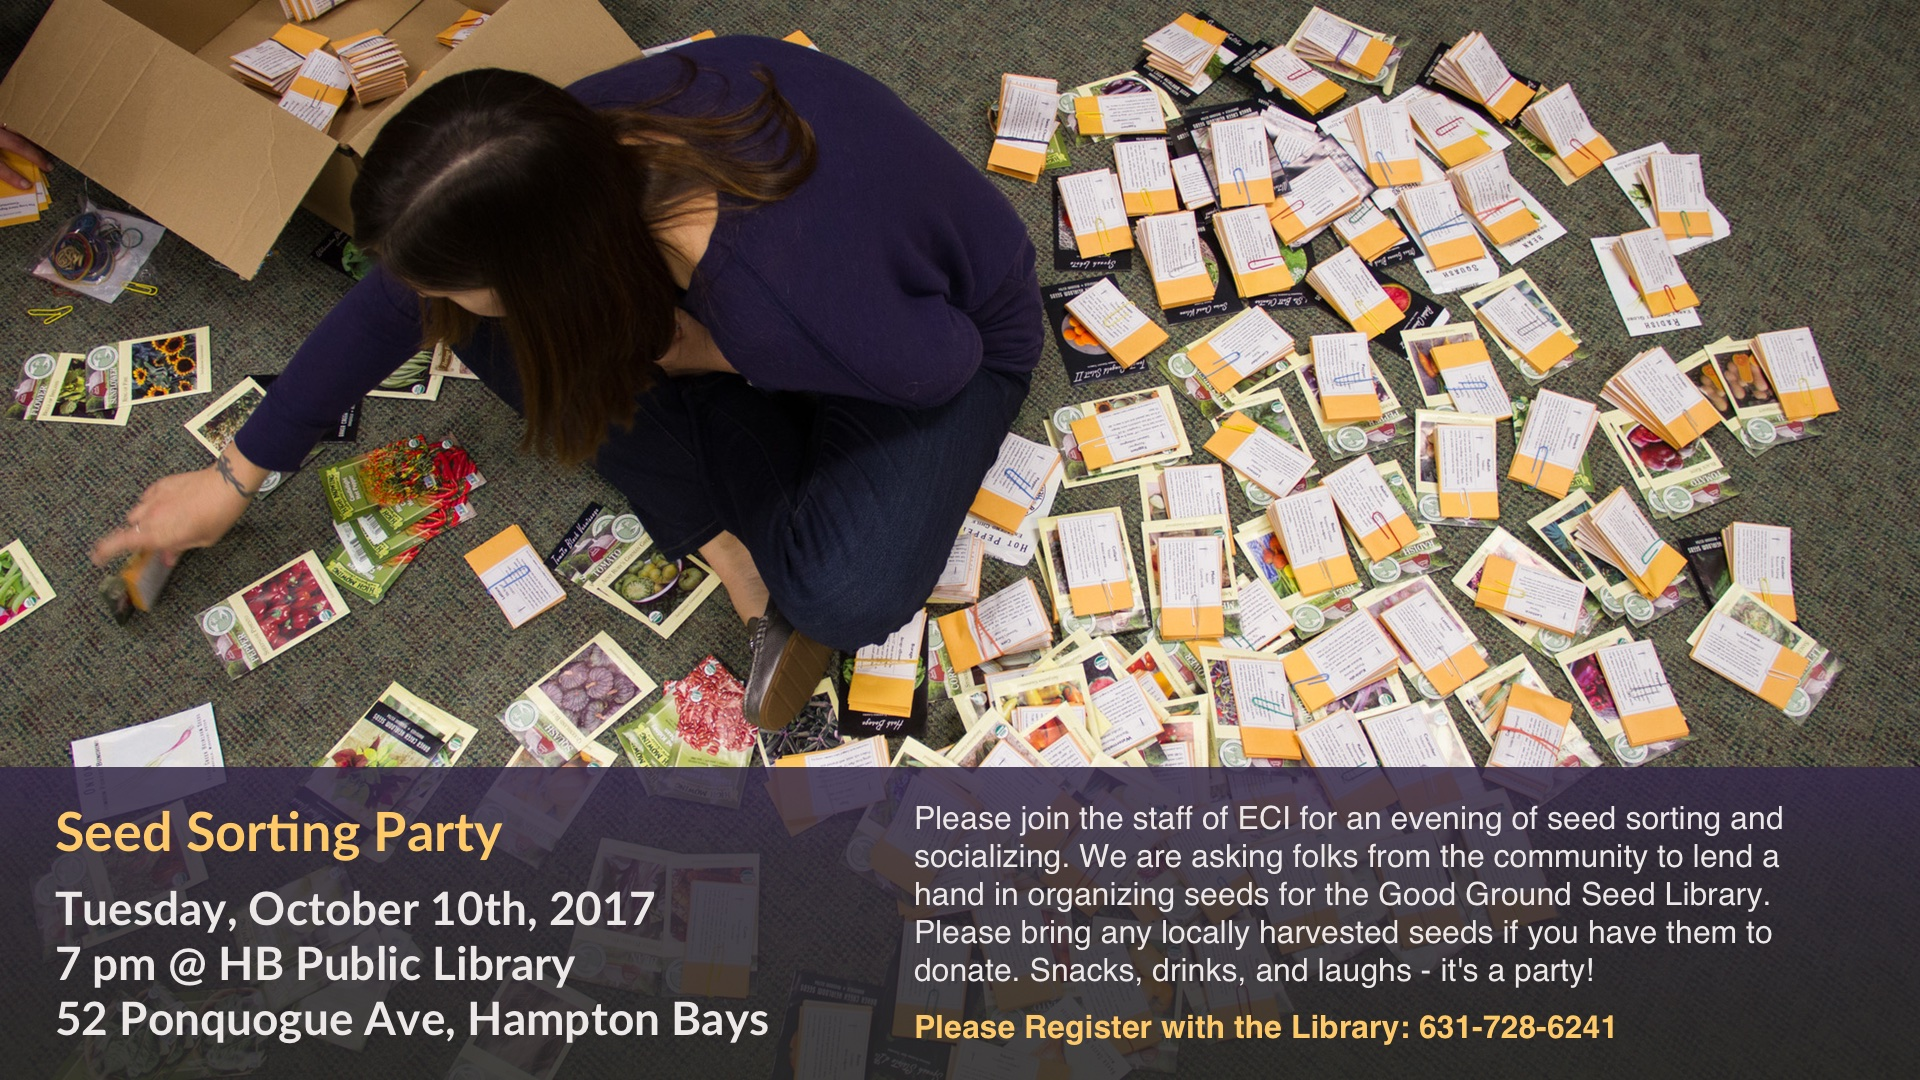 Seed Sorting Party - Oct 10th, 2017 - FB cover 1920x1080.jpg